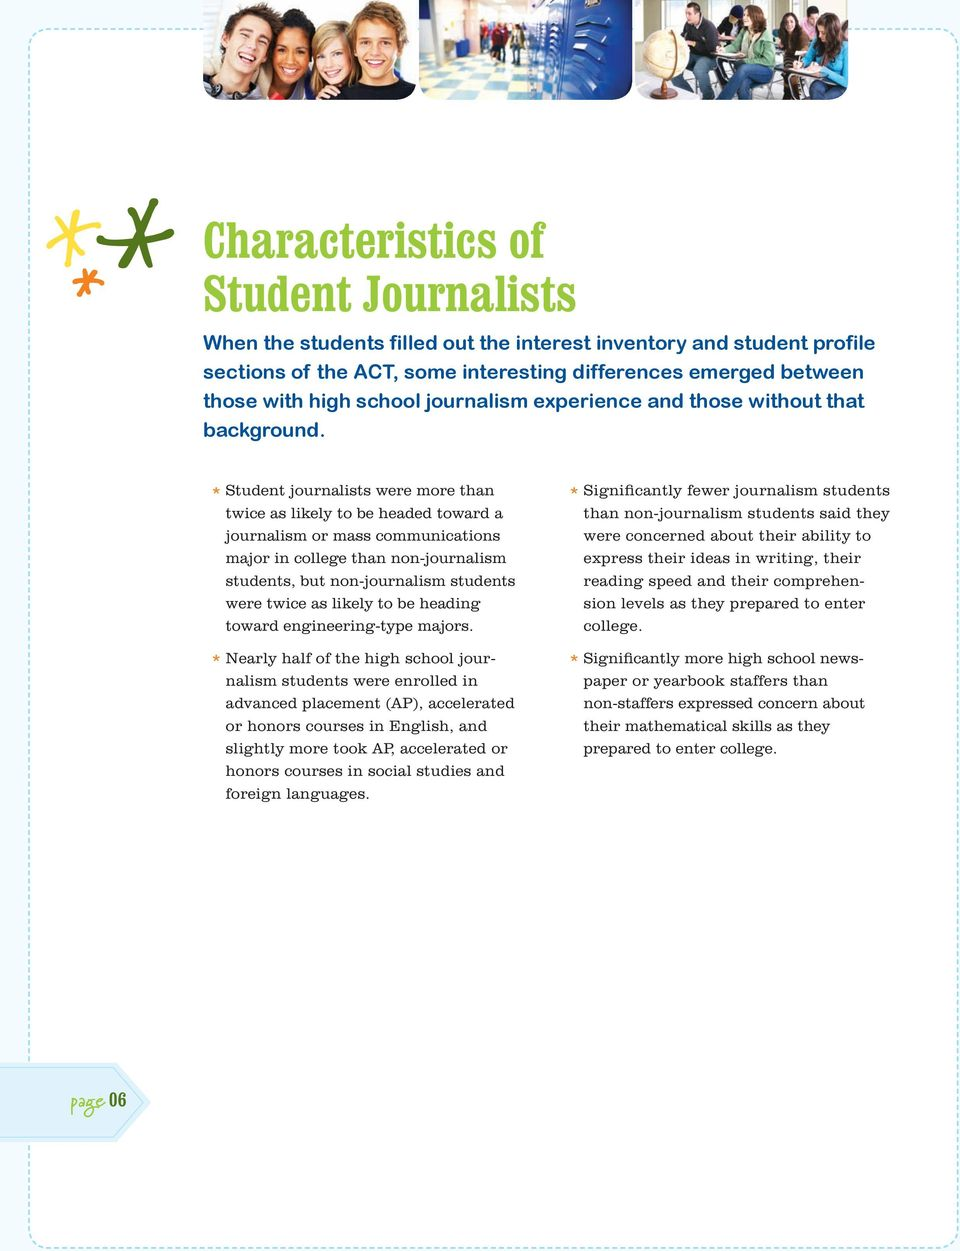 * Student journalists were more than twice as likely to be headed toward a journalism or mass communications major in college than non-journalism students, but non-journalism students were twice as